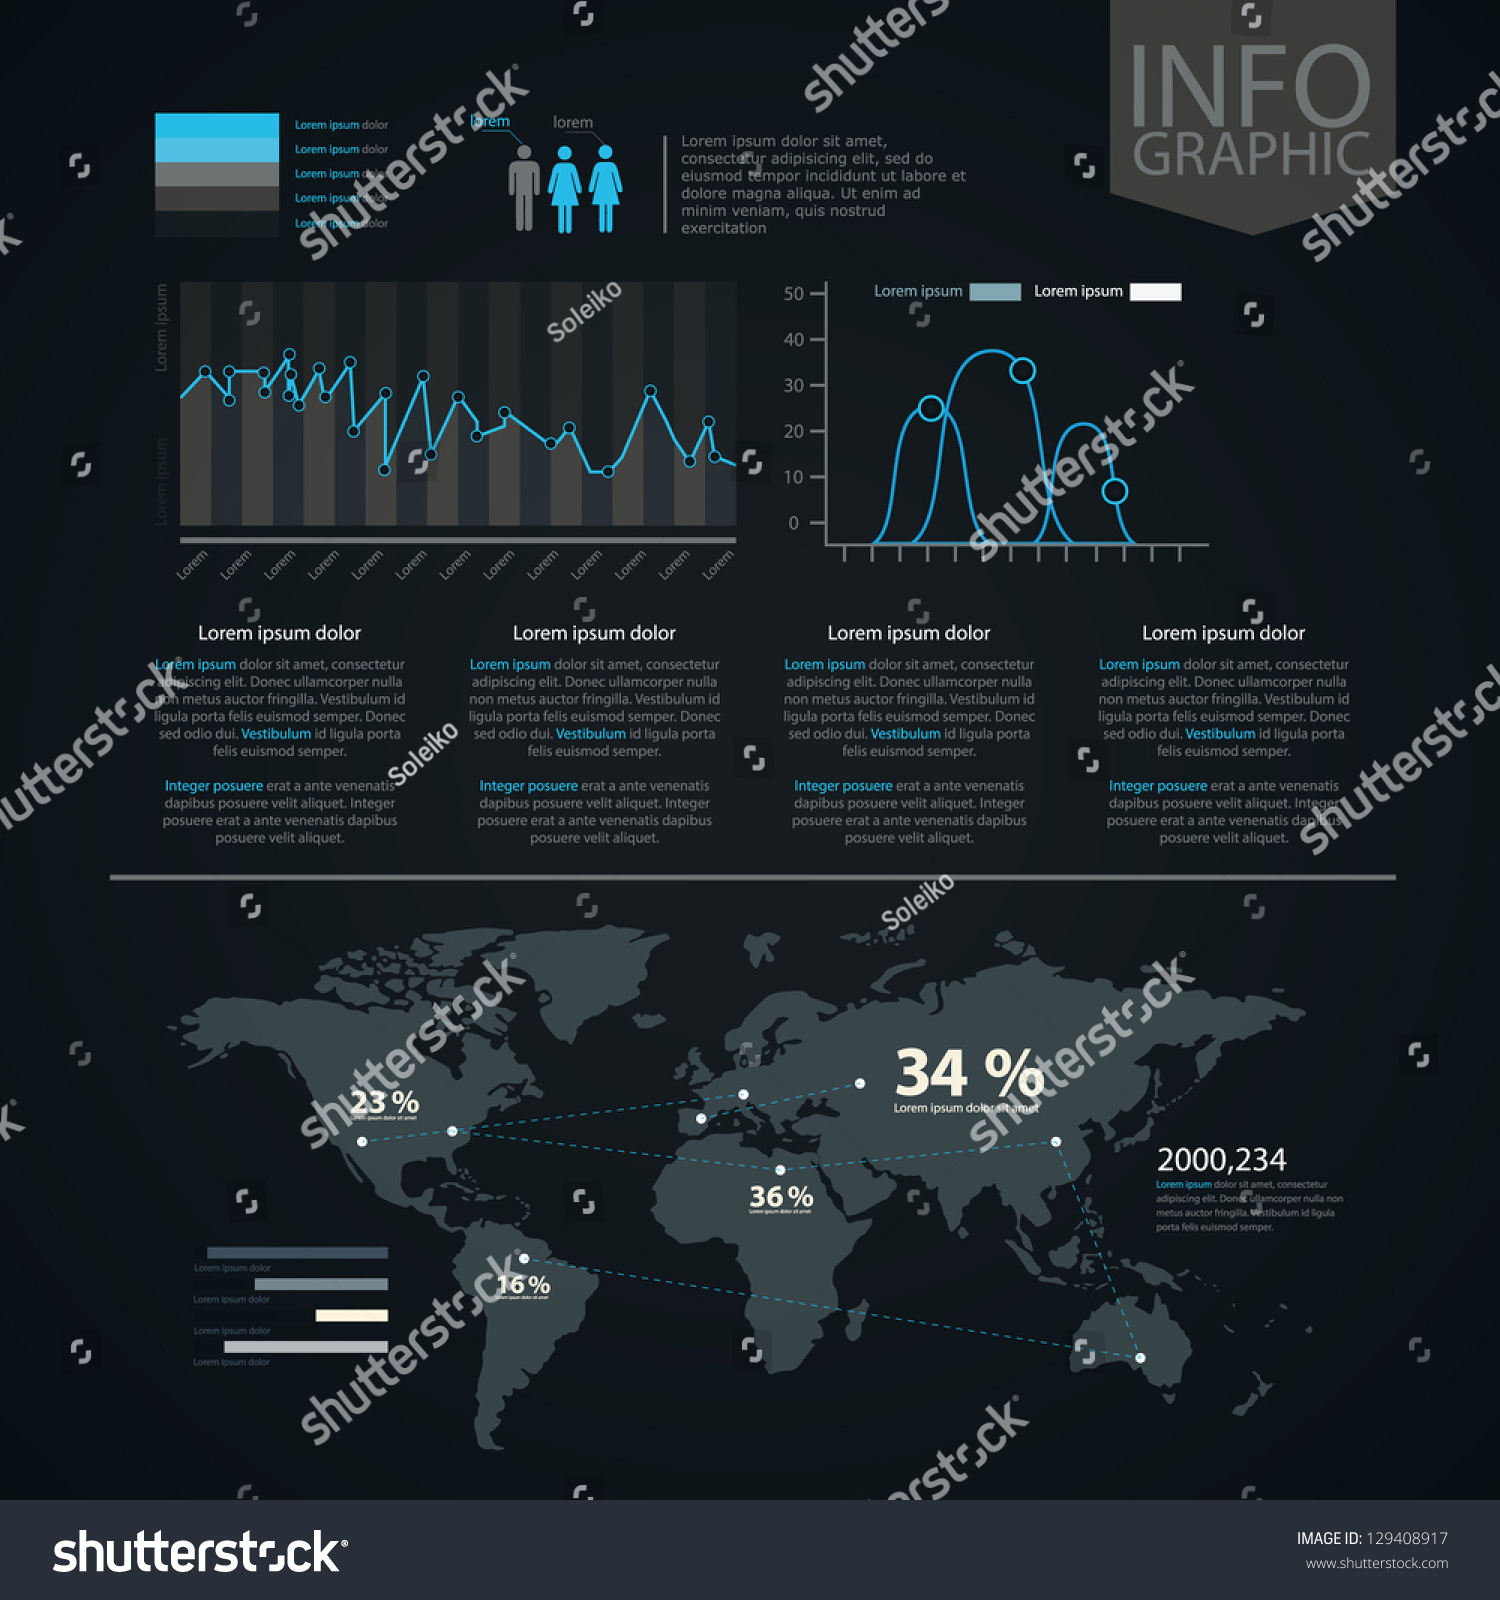 World map information graphics set infographic stock vector world map and information graphics set of infographic elements gumiabroncs Image collections